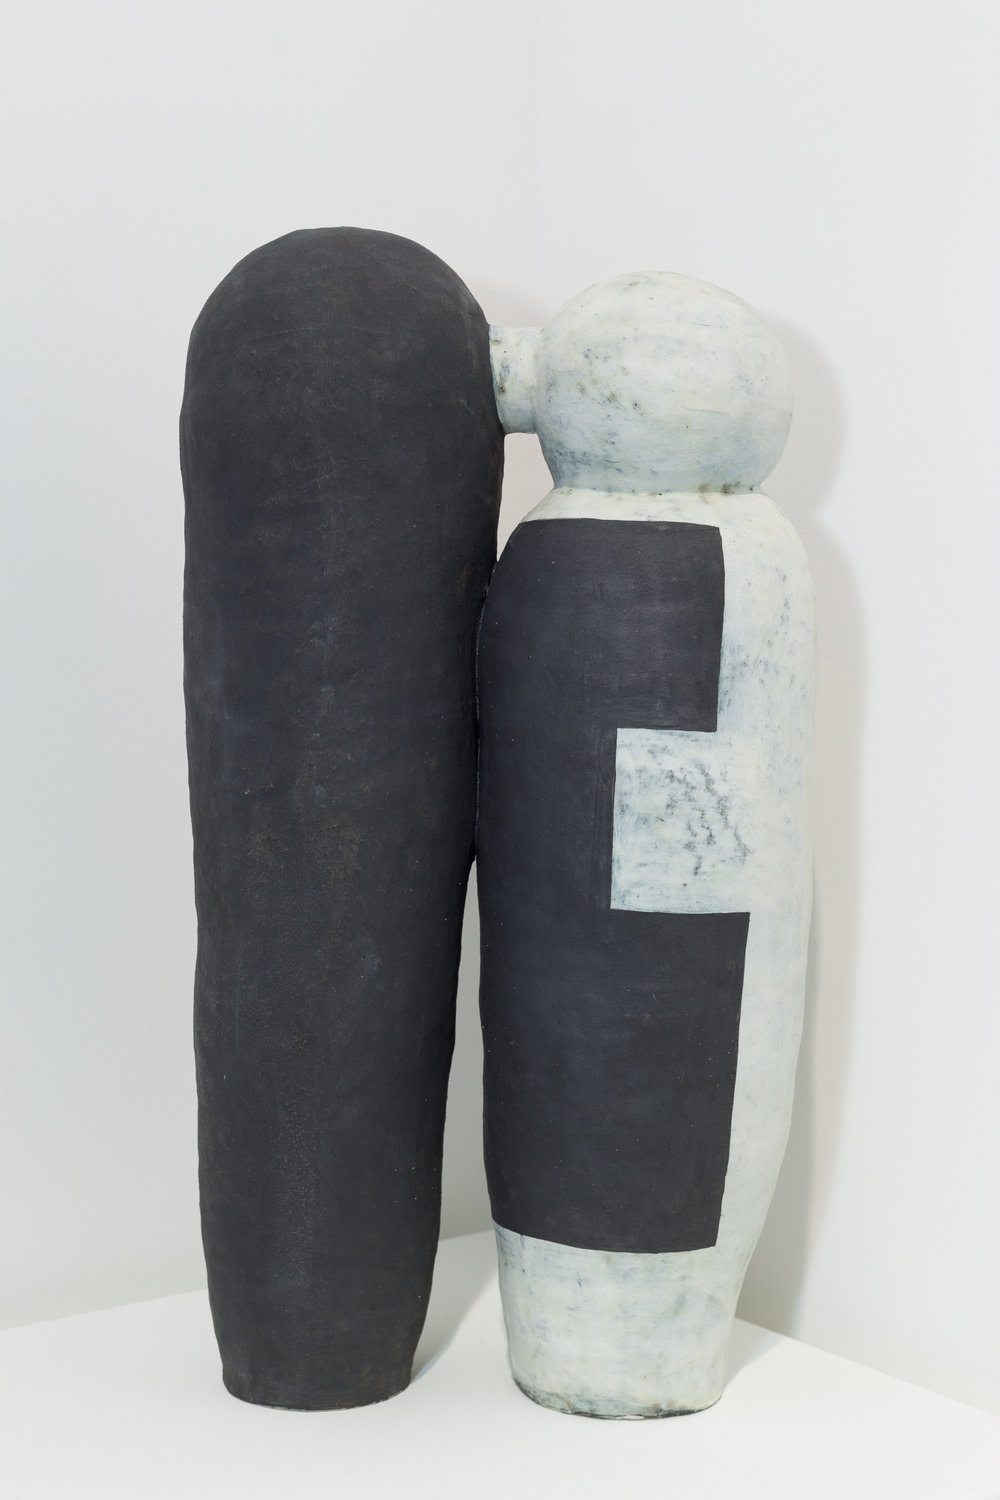 Daphe Corregan,  Connected Vessels , 2013. Grés, 55 x 24 x 12 cm